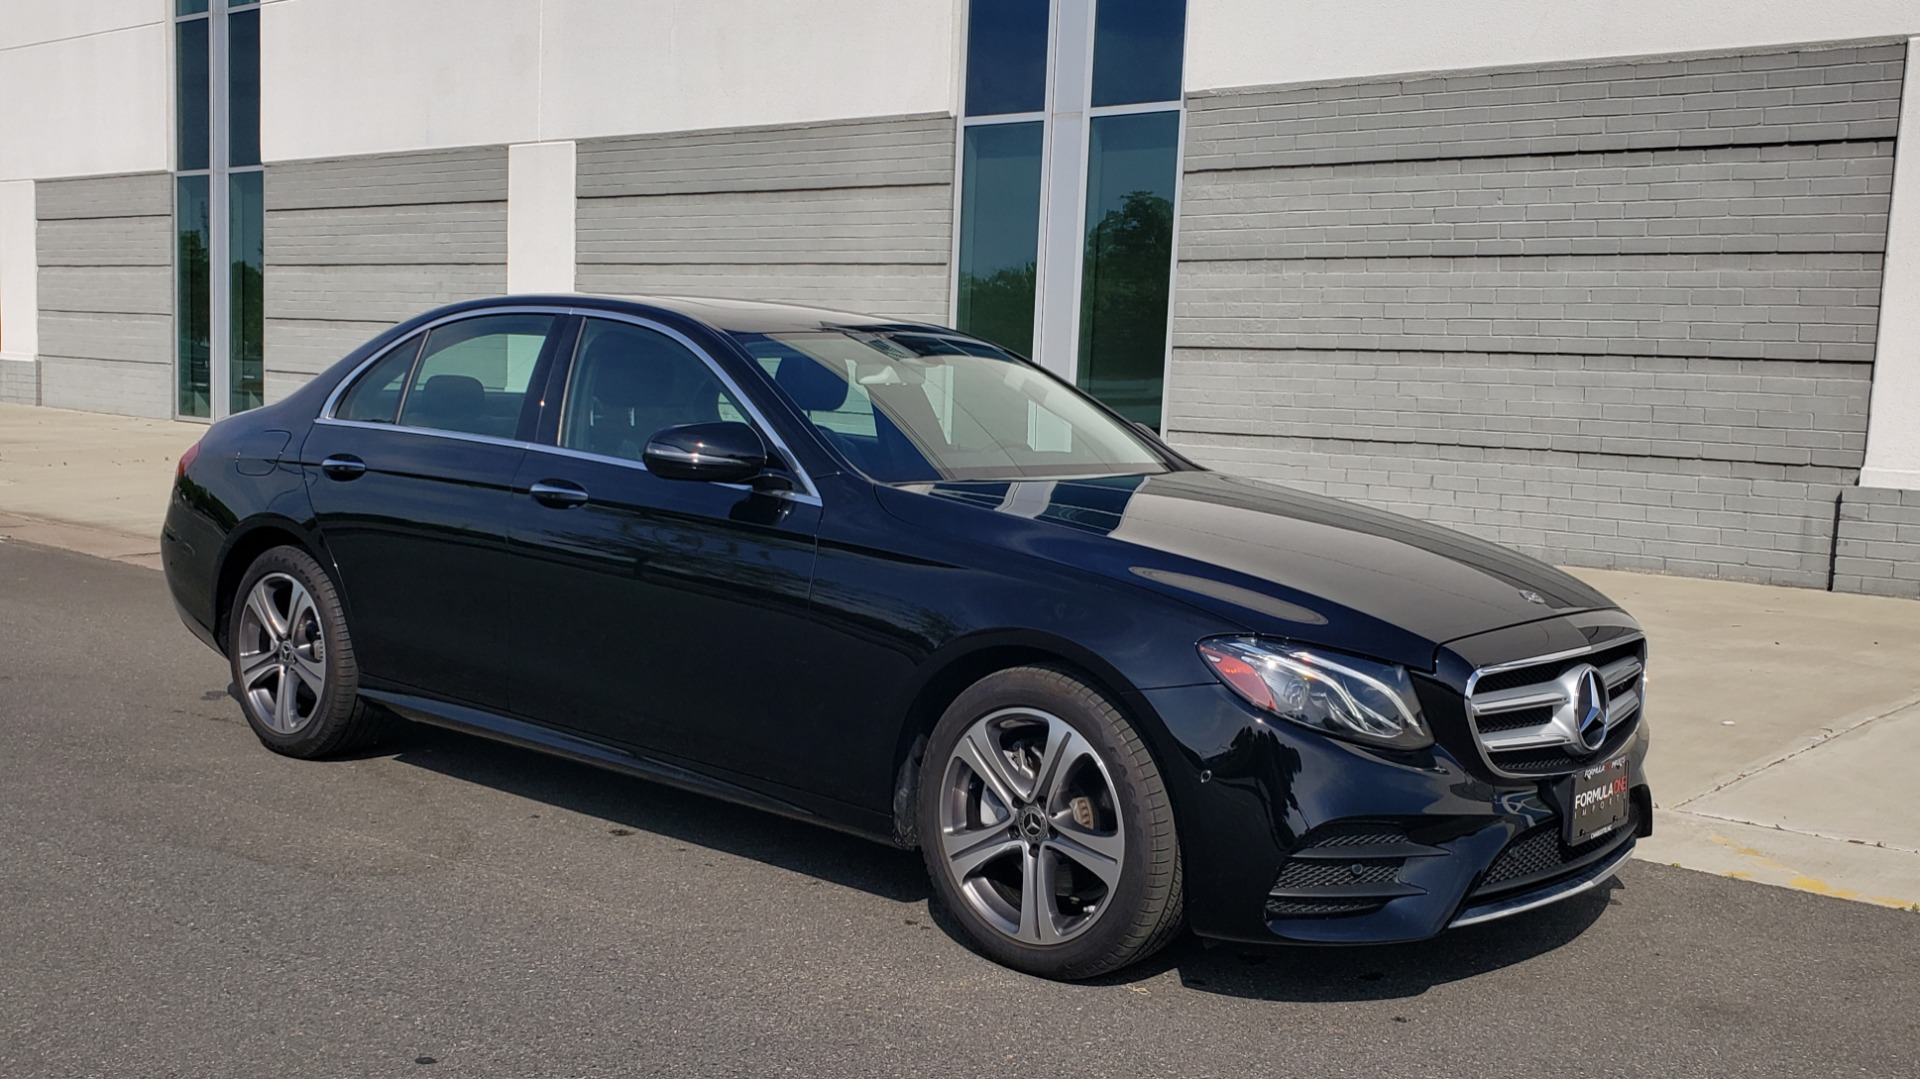 Used 2018 Mercedes-Benz E-CLASS E 300 PREMIUM / 4MATIC / NAV / SUNROOF / H/K SND / REARVIEW for sale $34,195 at Formula Imports in Charlotte NC 28227 6